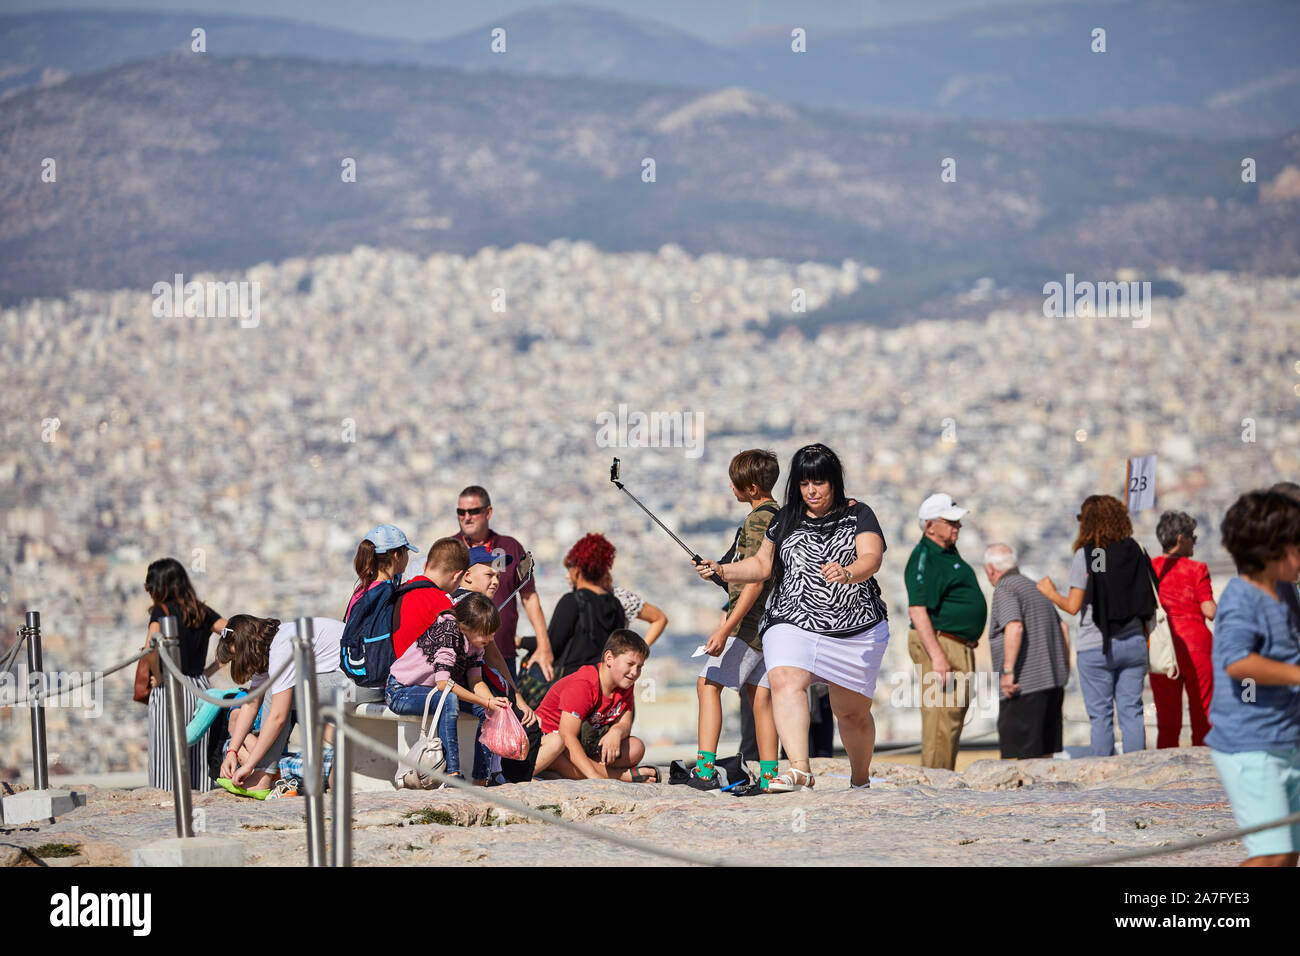 Athens capital of Greece view from landmark ruins Parthenon Temple Athens Acropolis, Situated on top of a rocky hill, overlooking the city of Athens Stock Photo